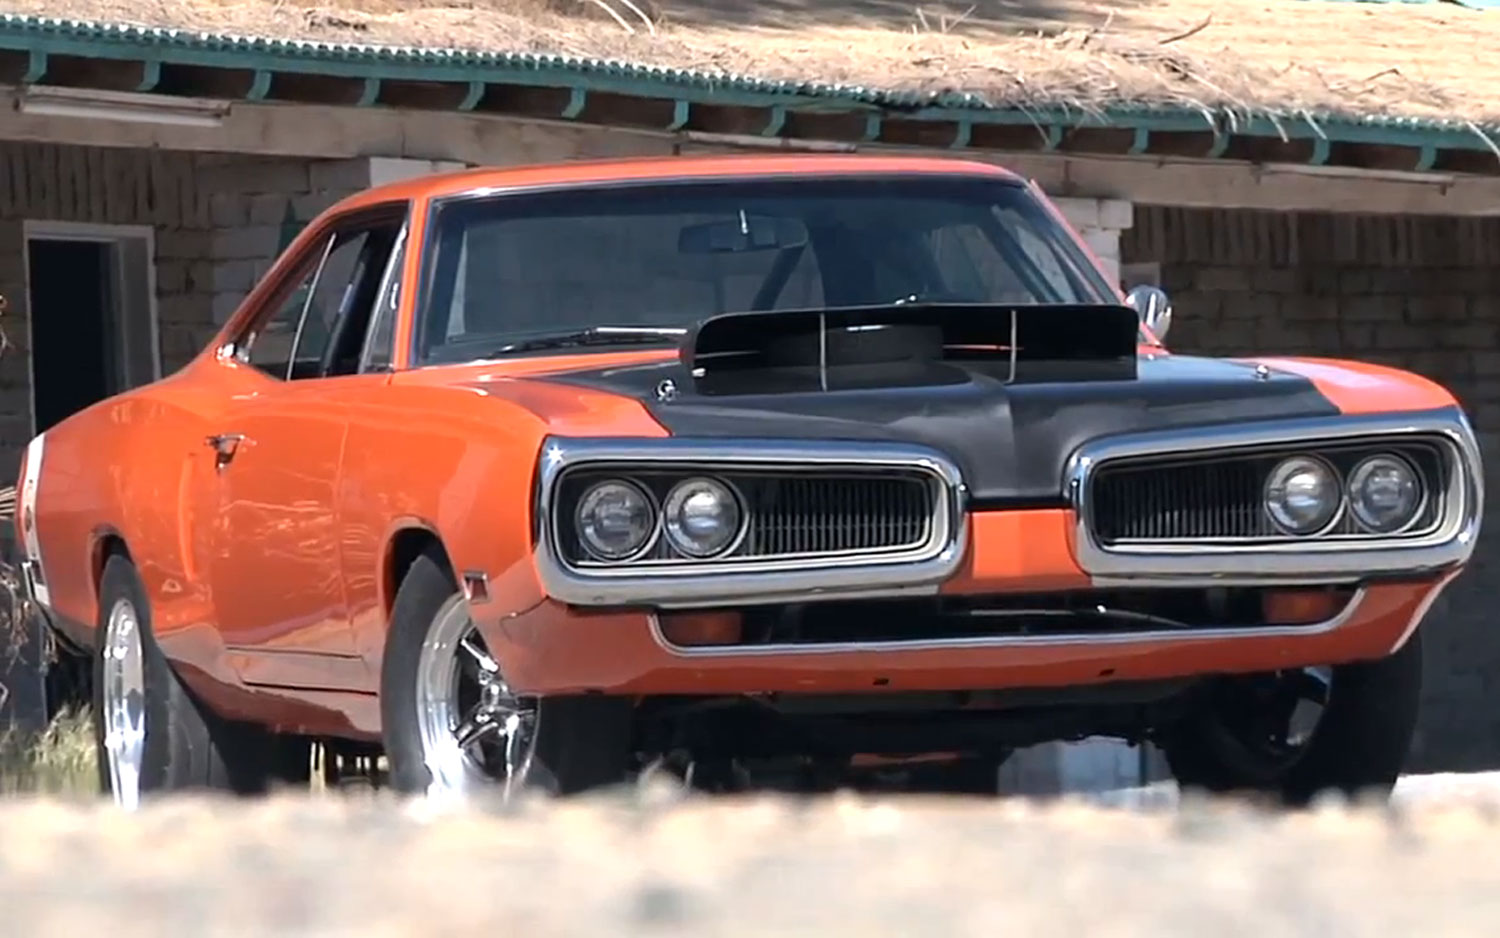 First Episode Of Hot Rod Unlimited On The Motor Trend Youtube Channel